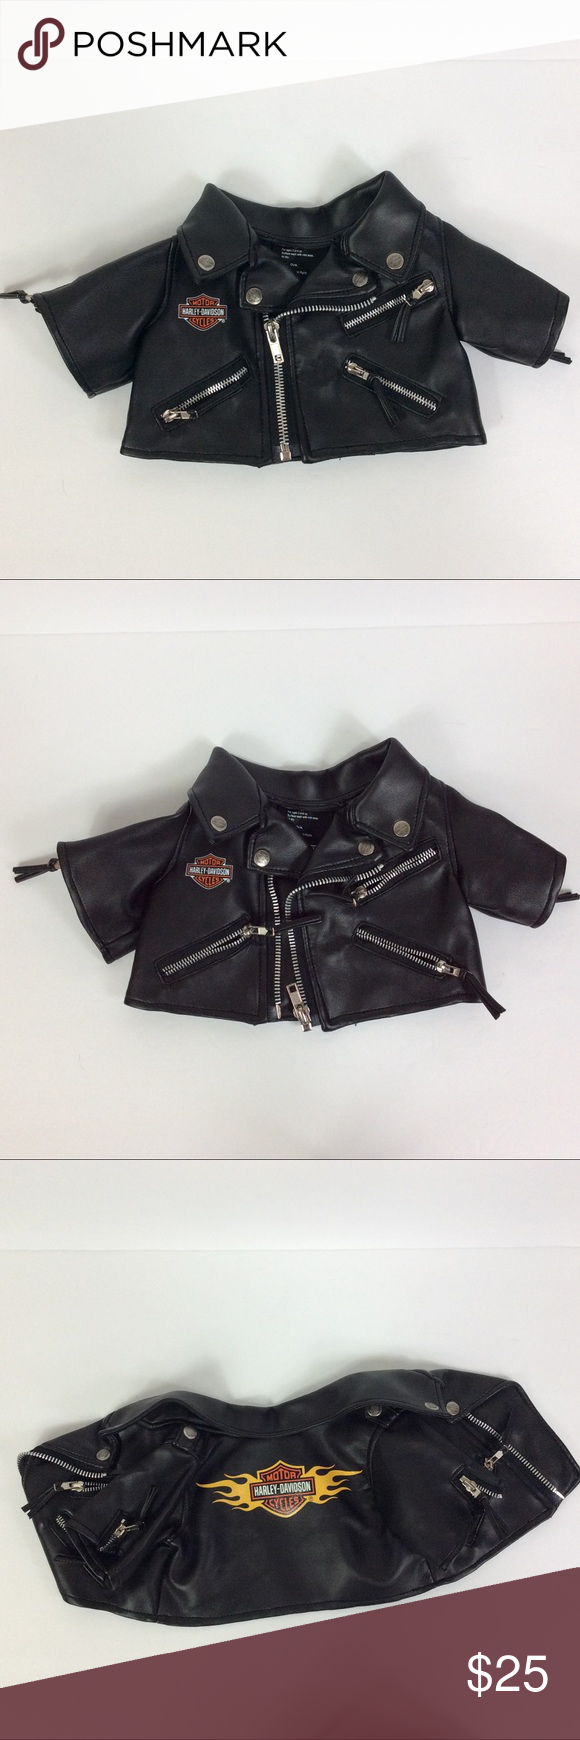 Harley Davidson Infant Baby Faux Leather Jacket Faux